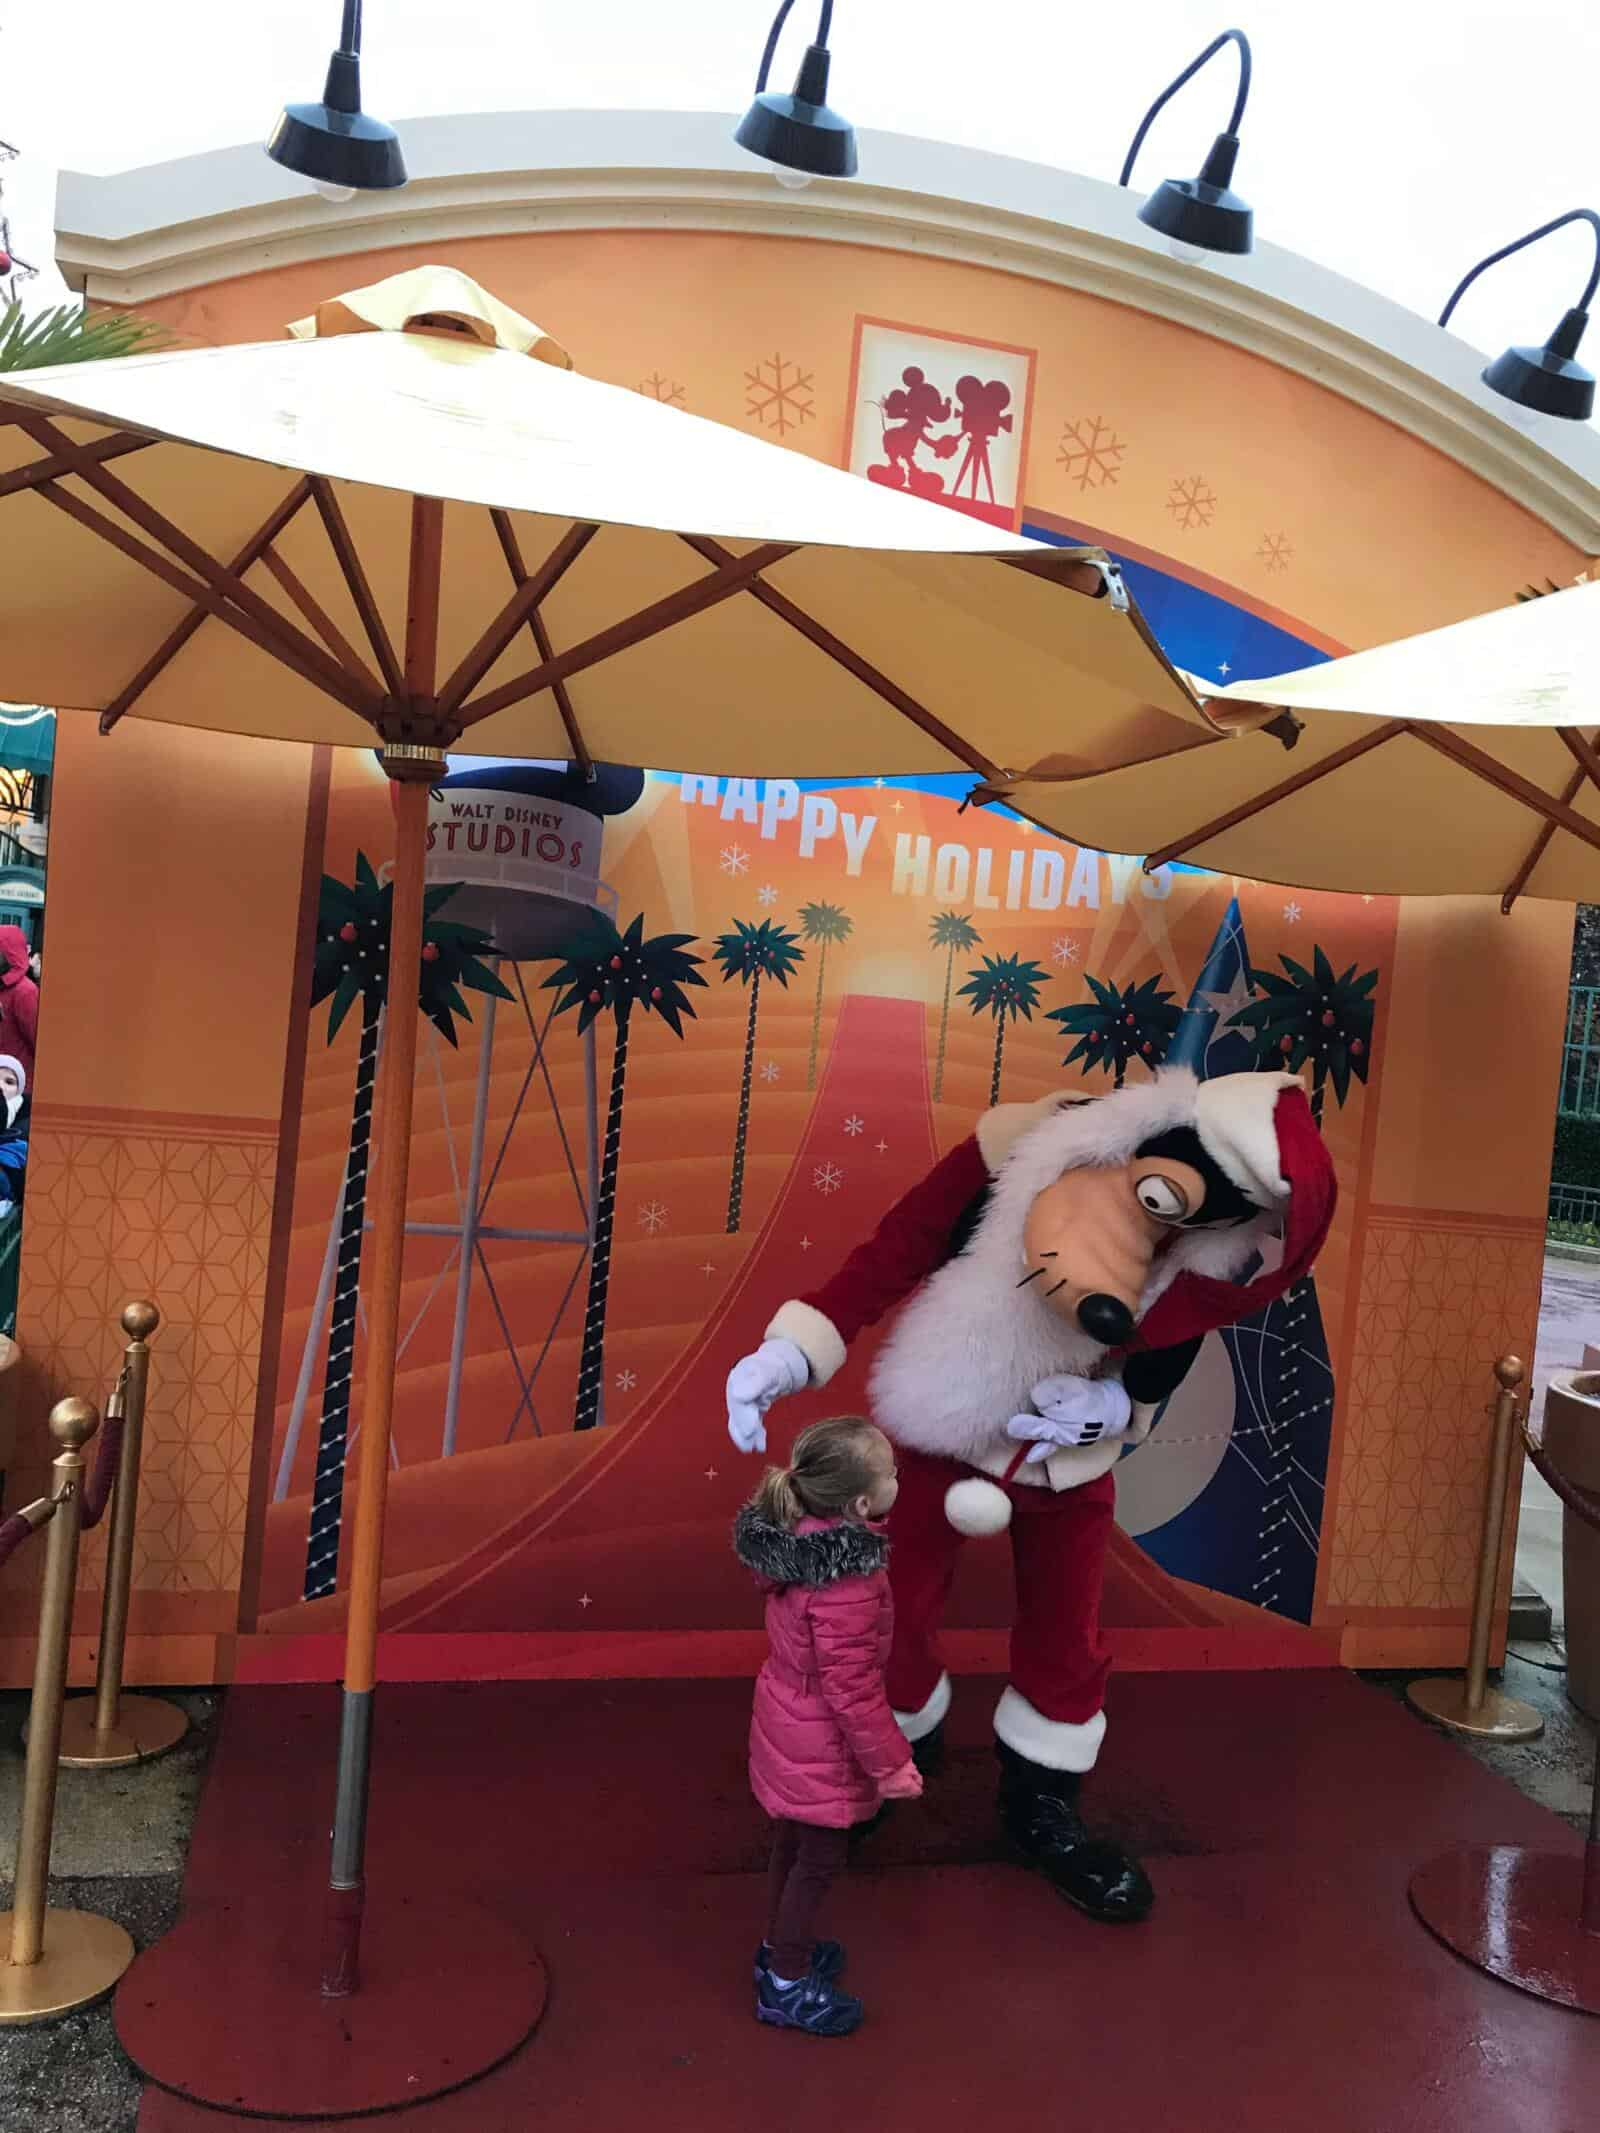 Disneyland Paris at Christmas - characters in festive outfits